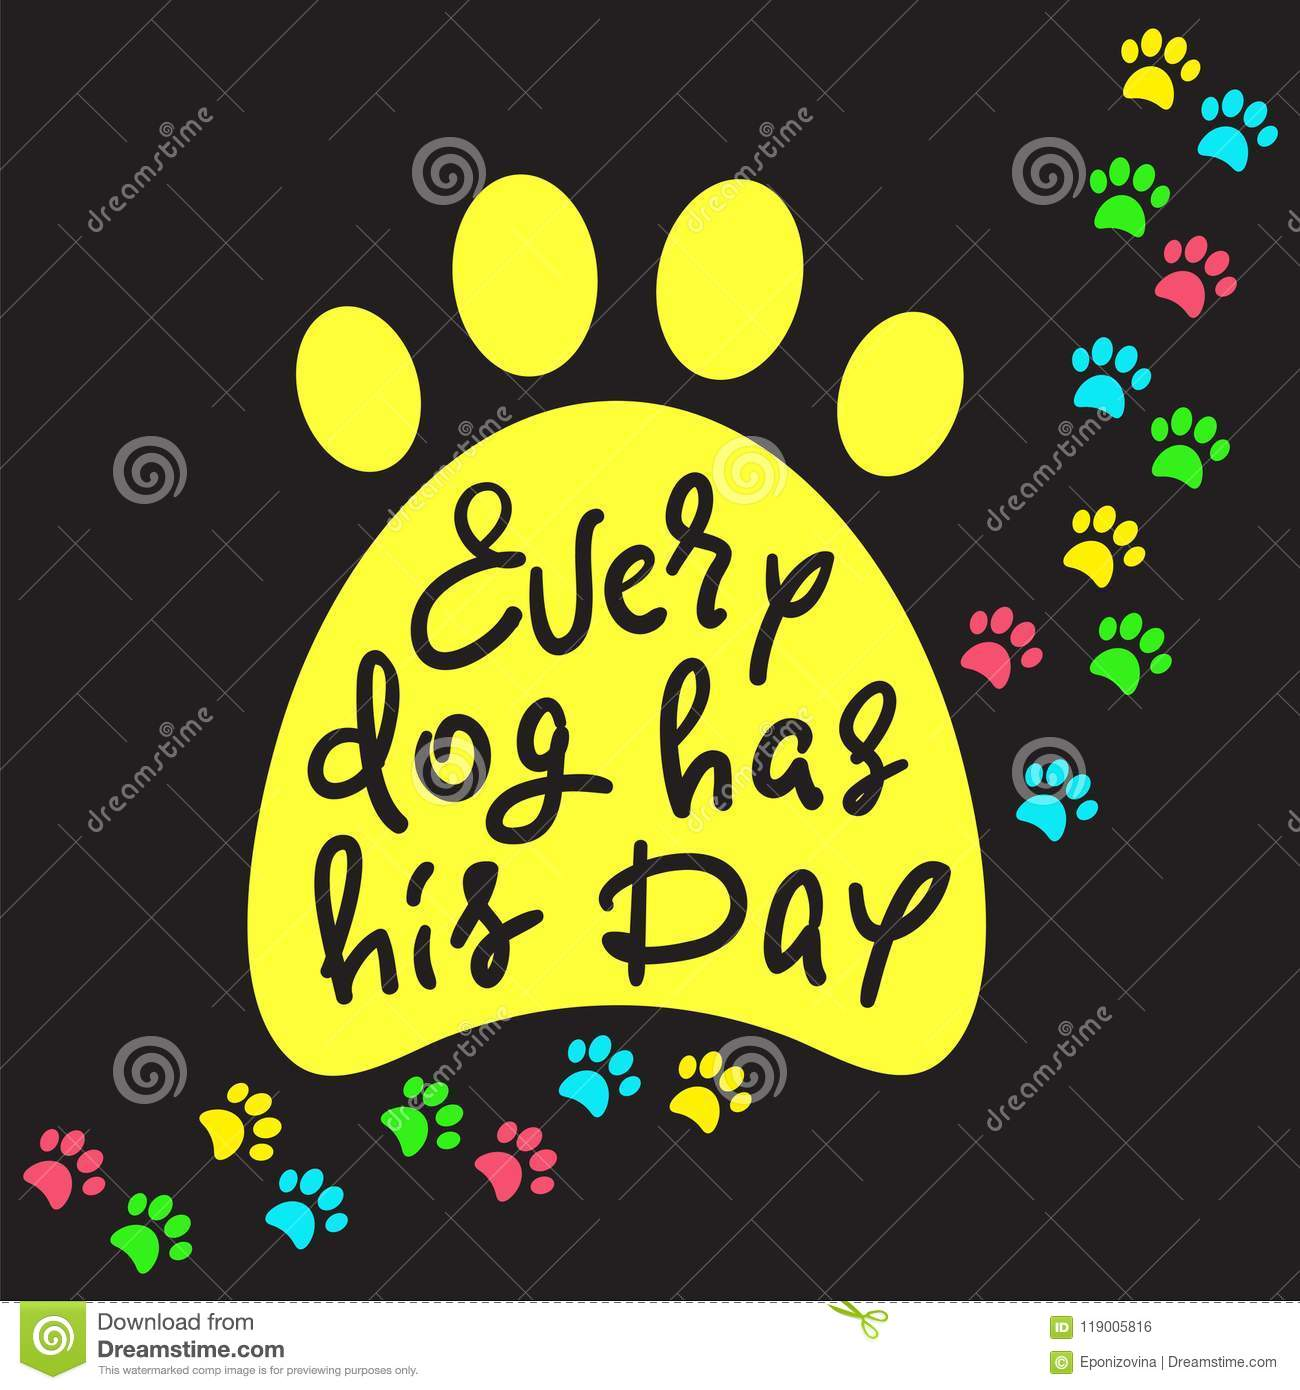 Every dog has his day handwritten funny motivational quote every dog has his day handwritten funny motivational quote american slang print for inspiring poster t shirt bag cups greeting postcard flyer m4hsunfo